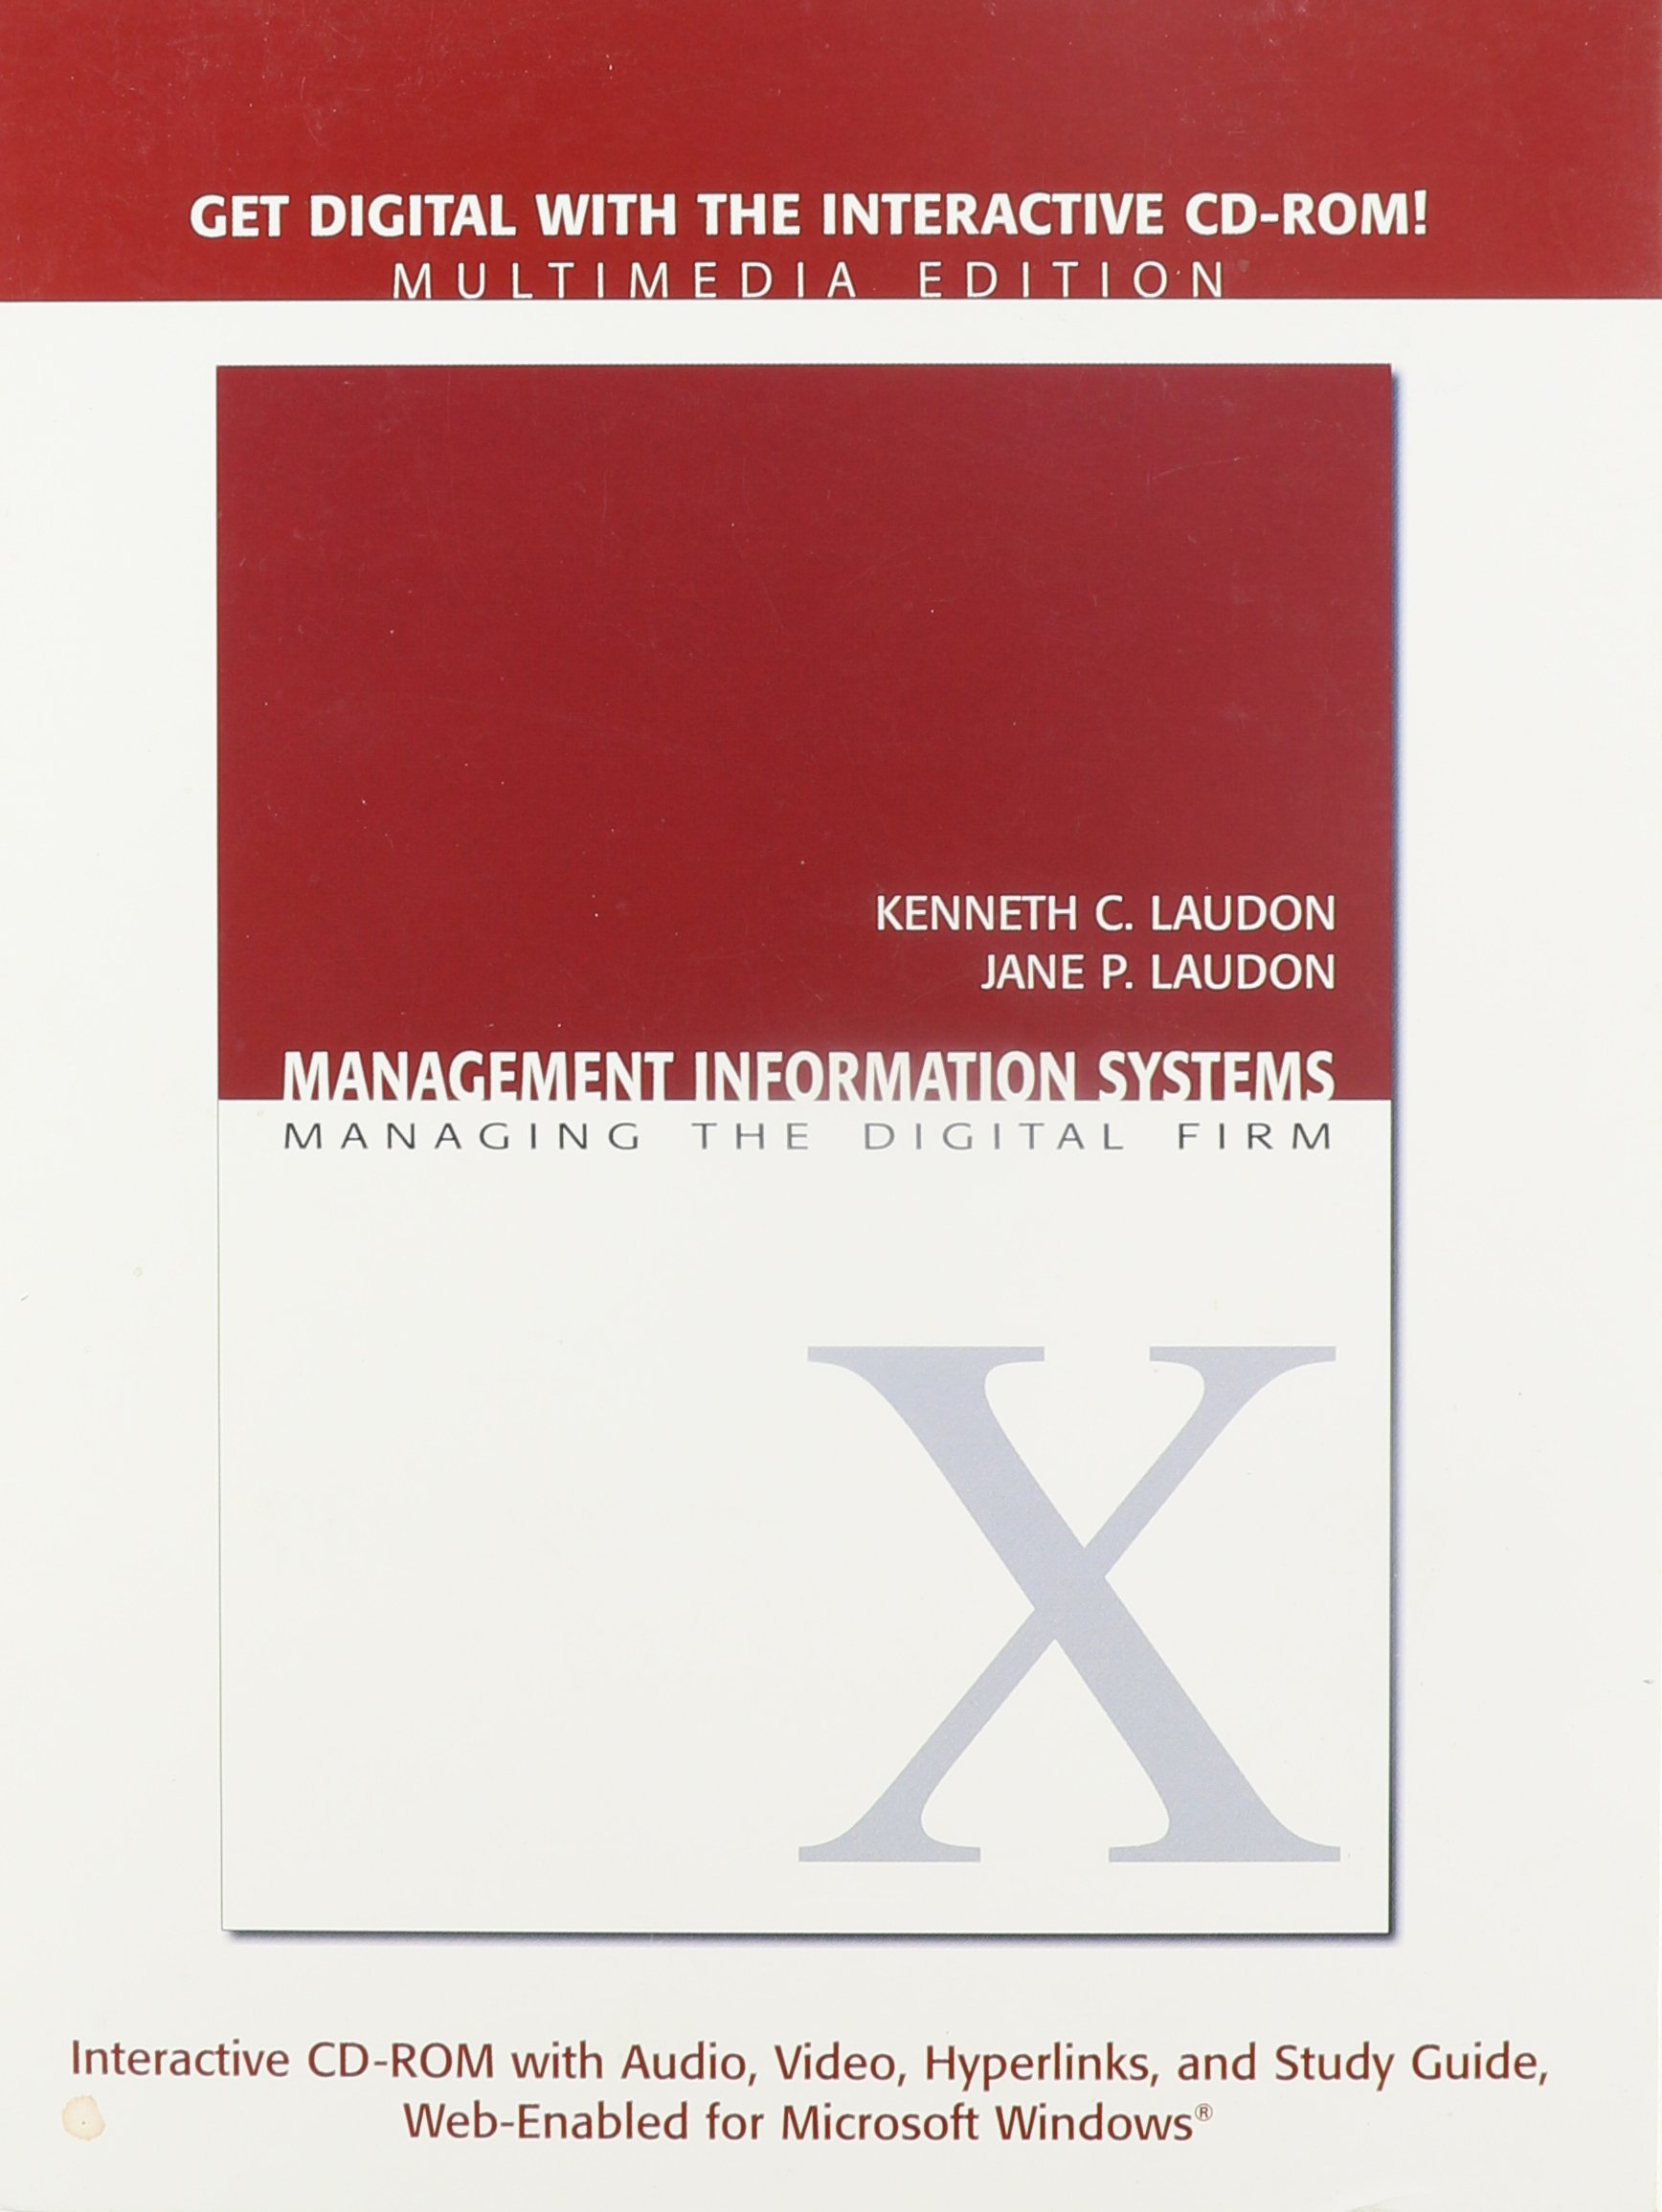 Management Information Systems Multimedia Edition: Managing the Digital Firm